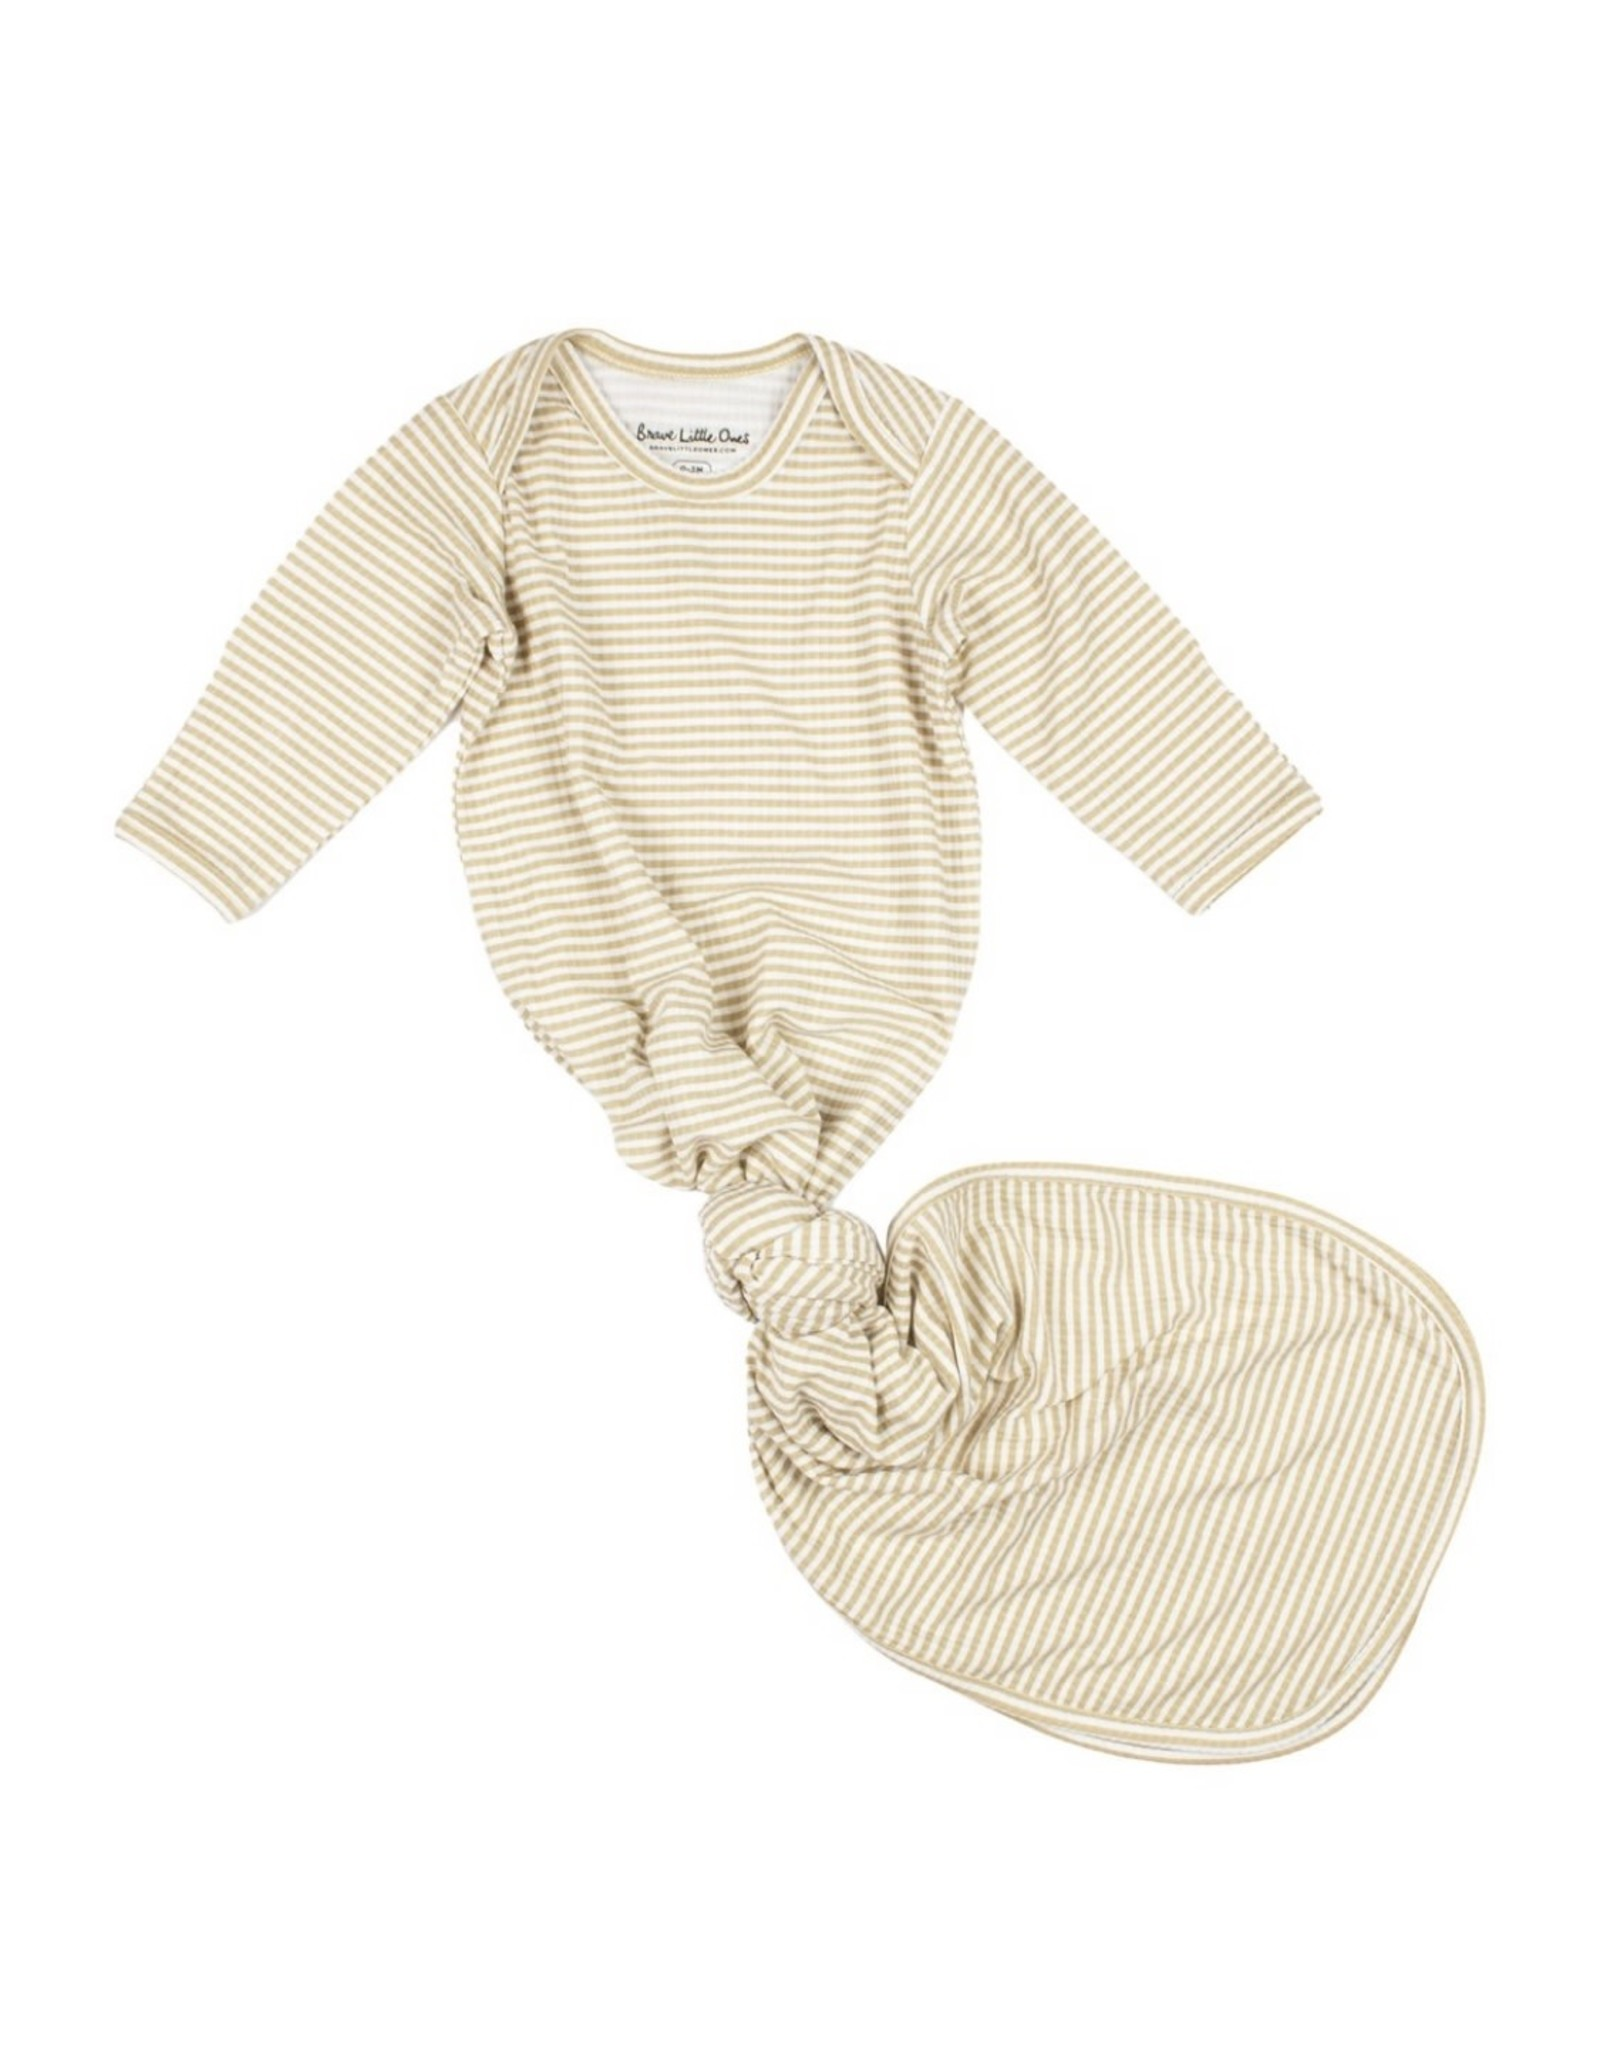 Brave Little Ones Brave Little Ones- Tan Stripe Ribbed Knotted Gown 0-3M